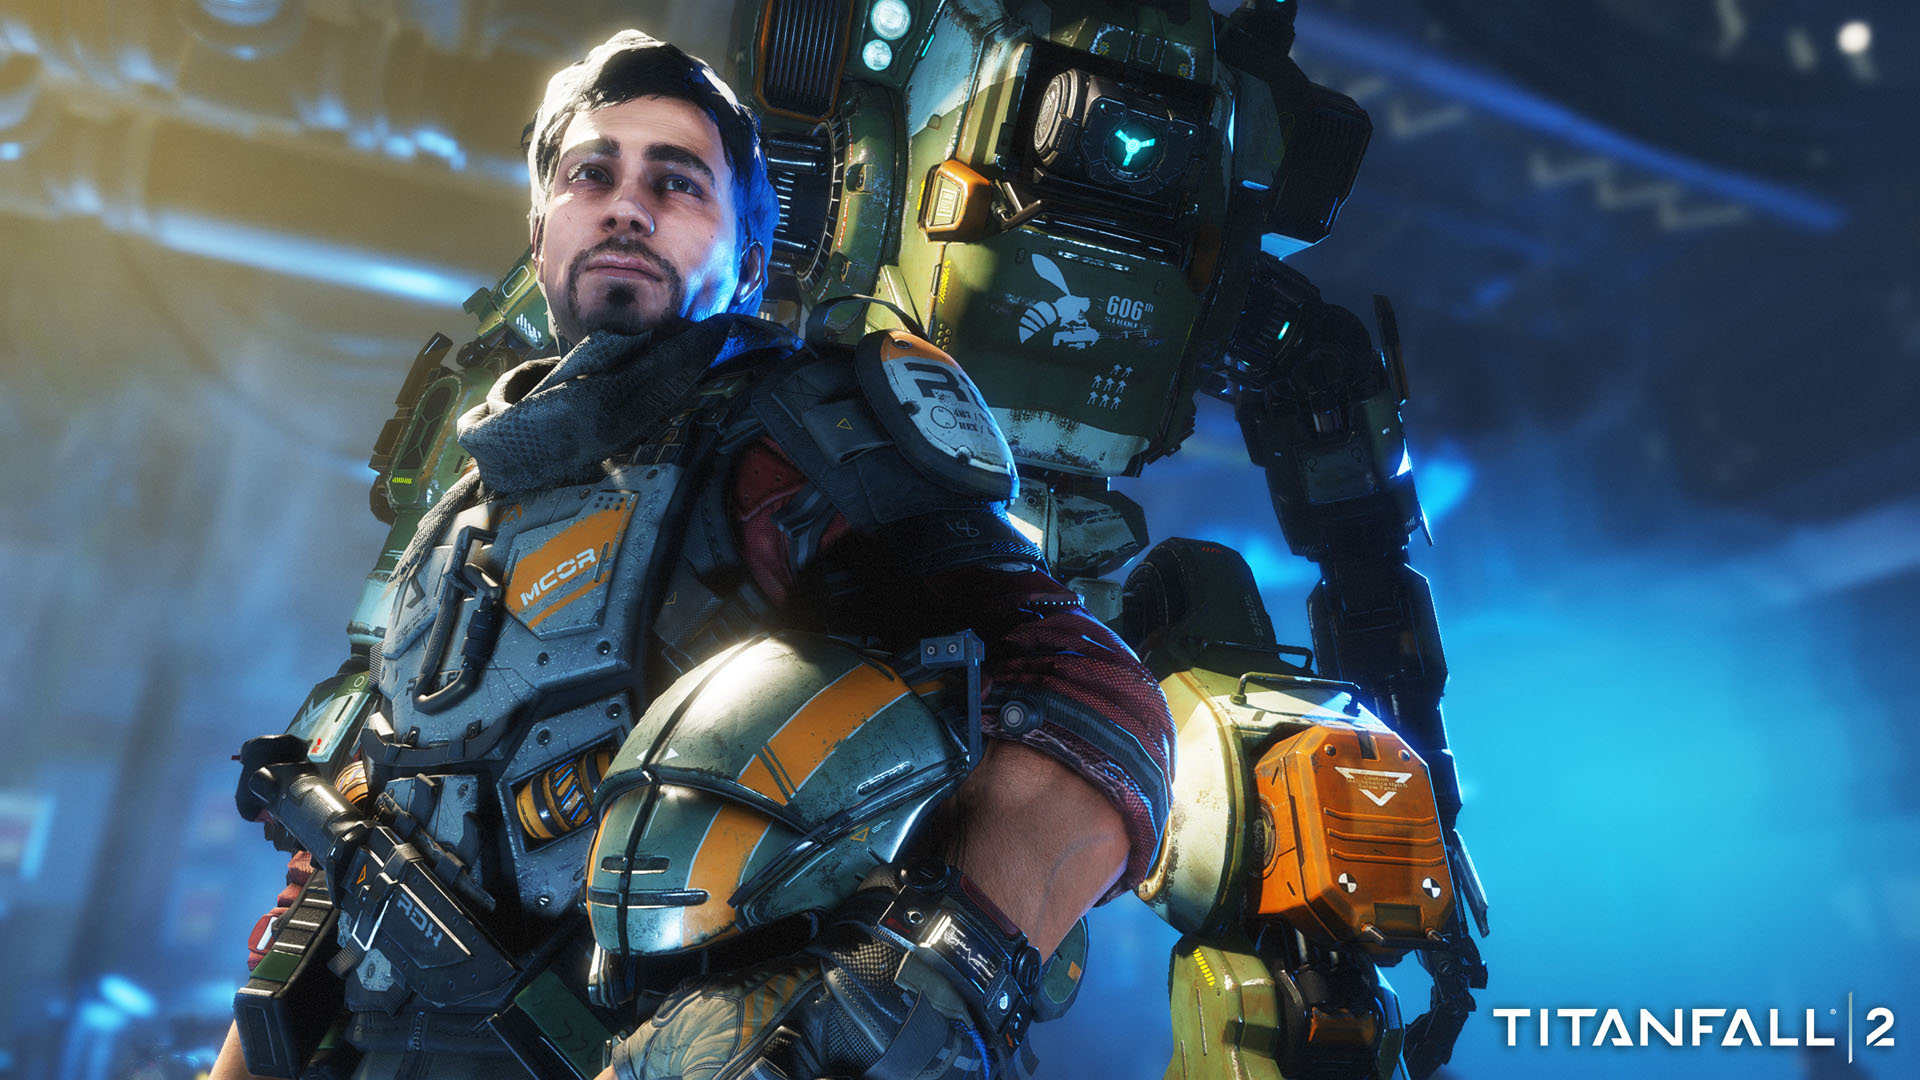 titanfall-2-the-vgprofessional-review-11